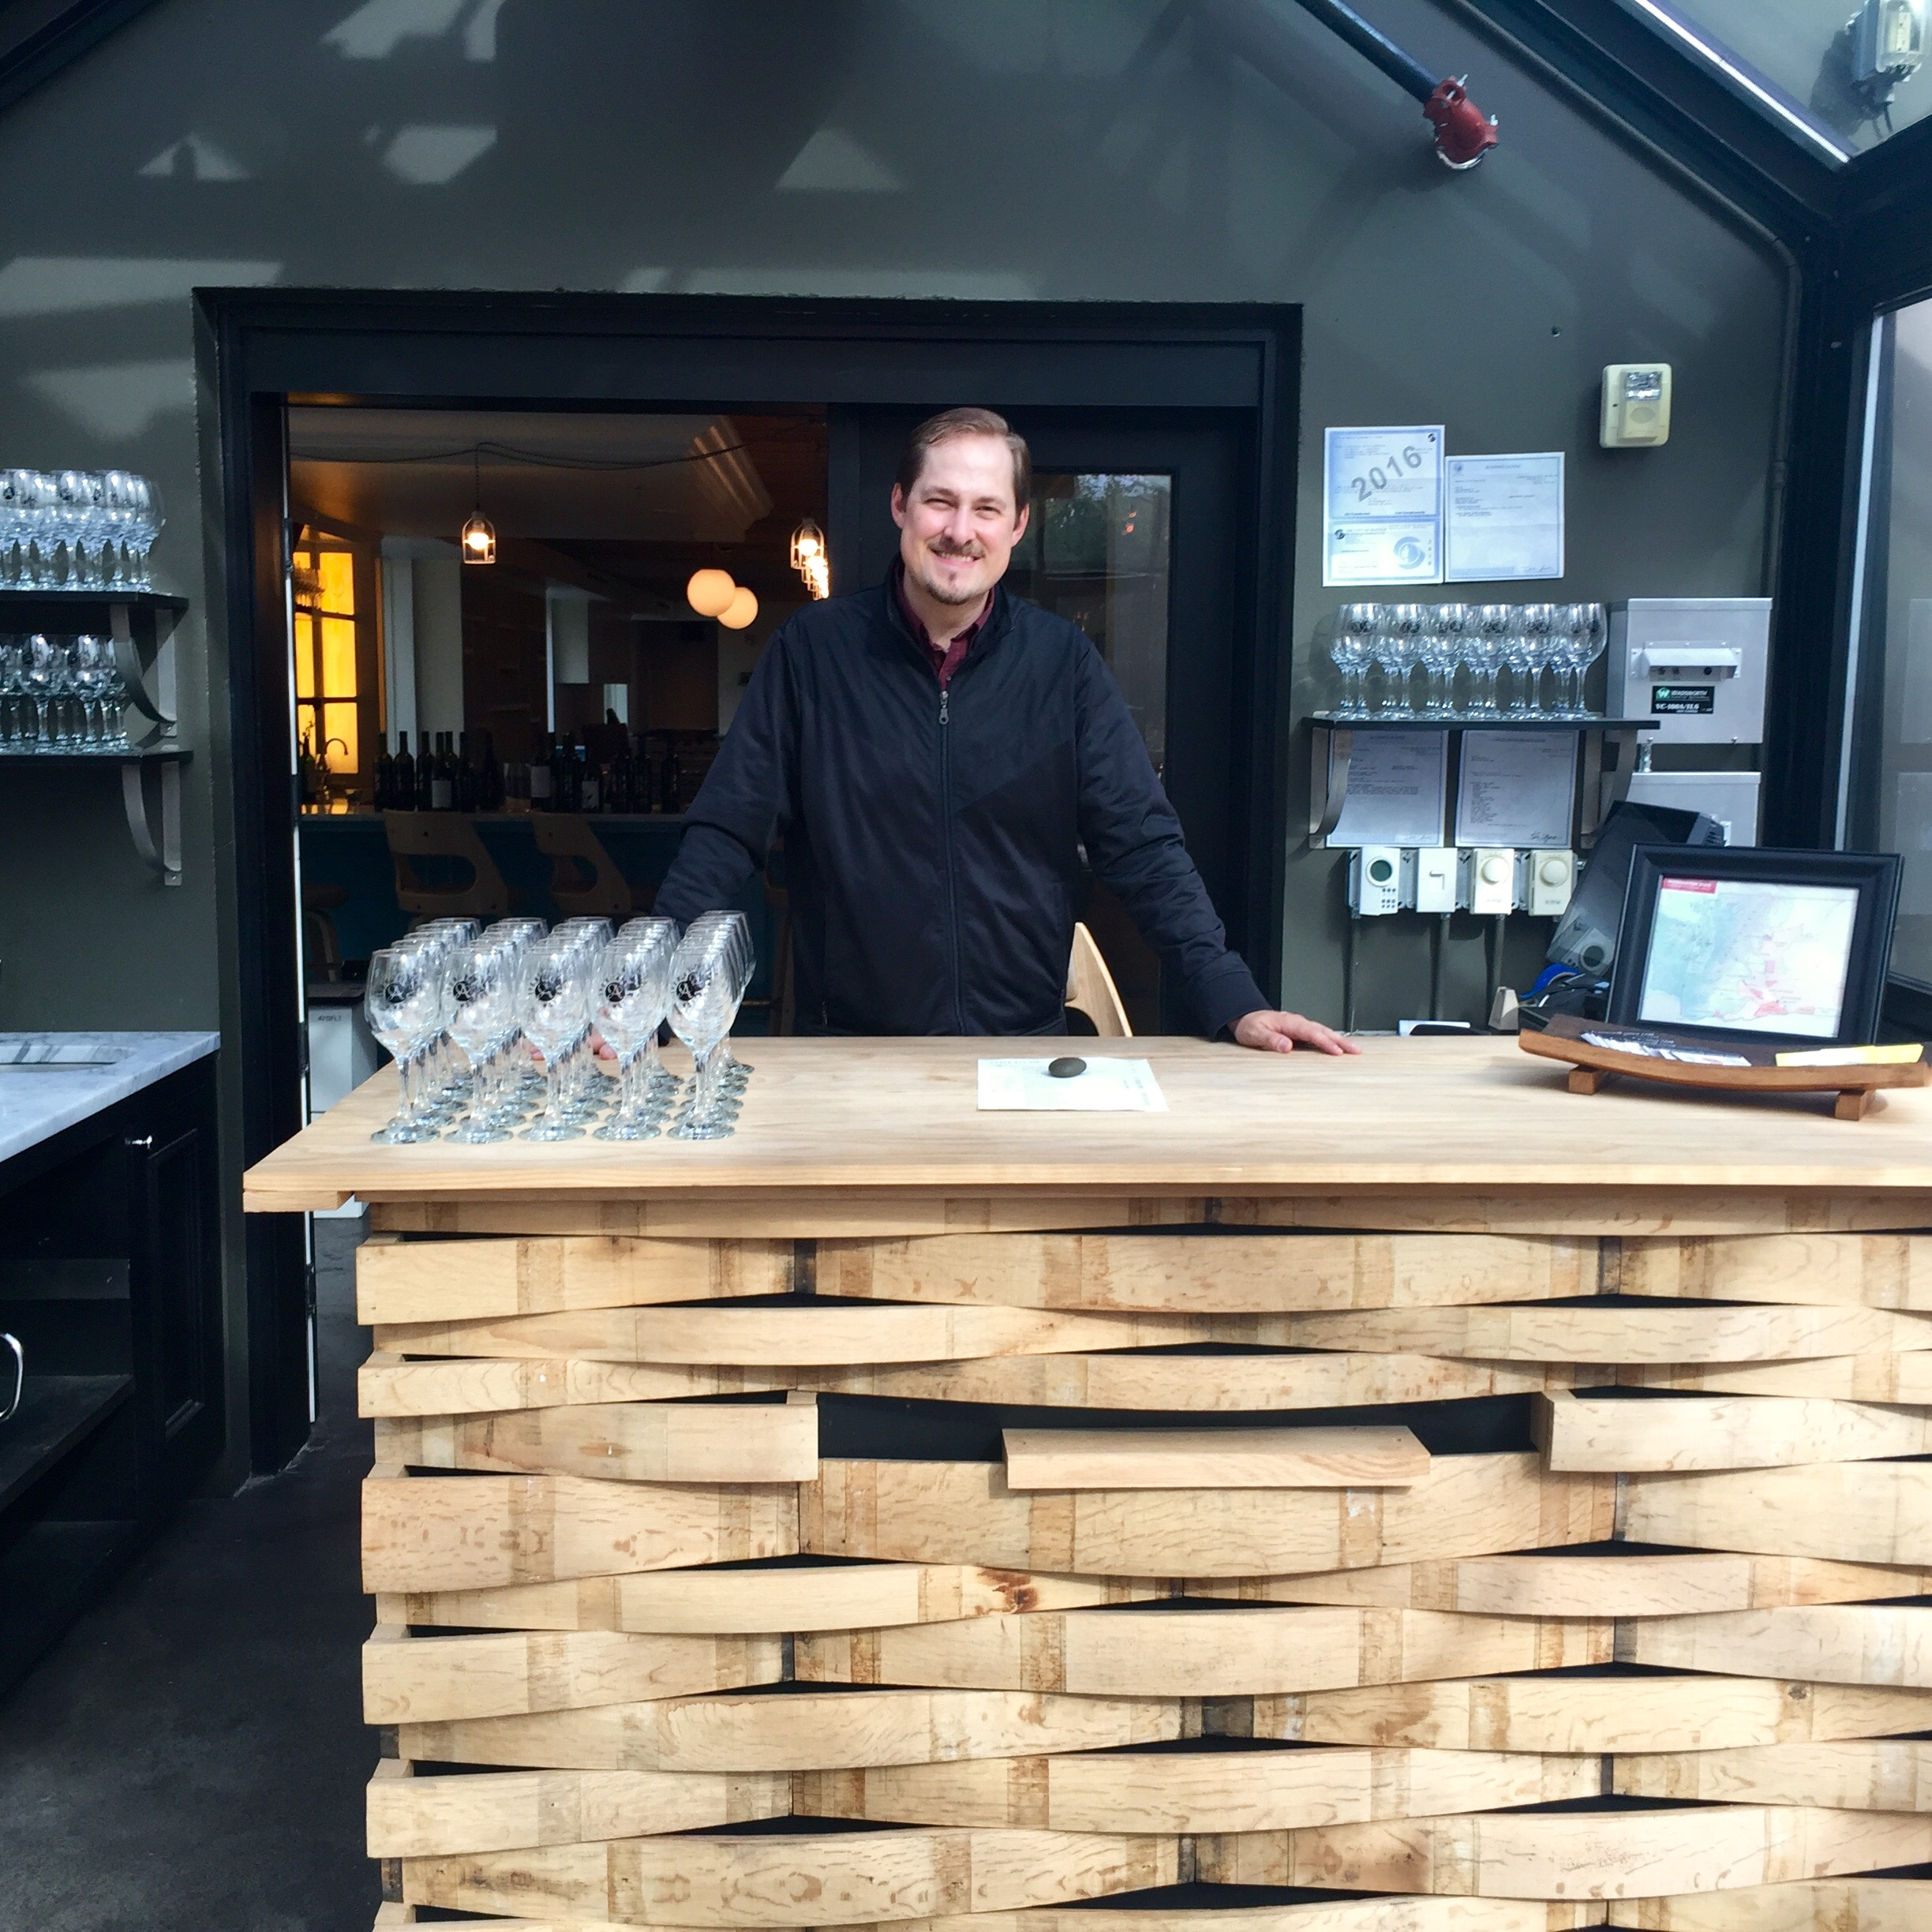 Ben Almquist showcasing the bar in the lovely greenhouse at 198 Nickerson St.